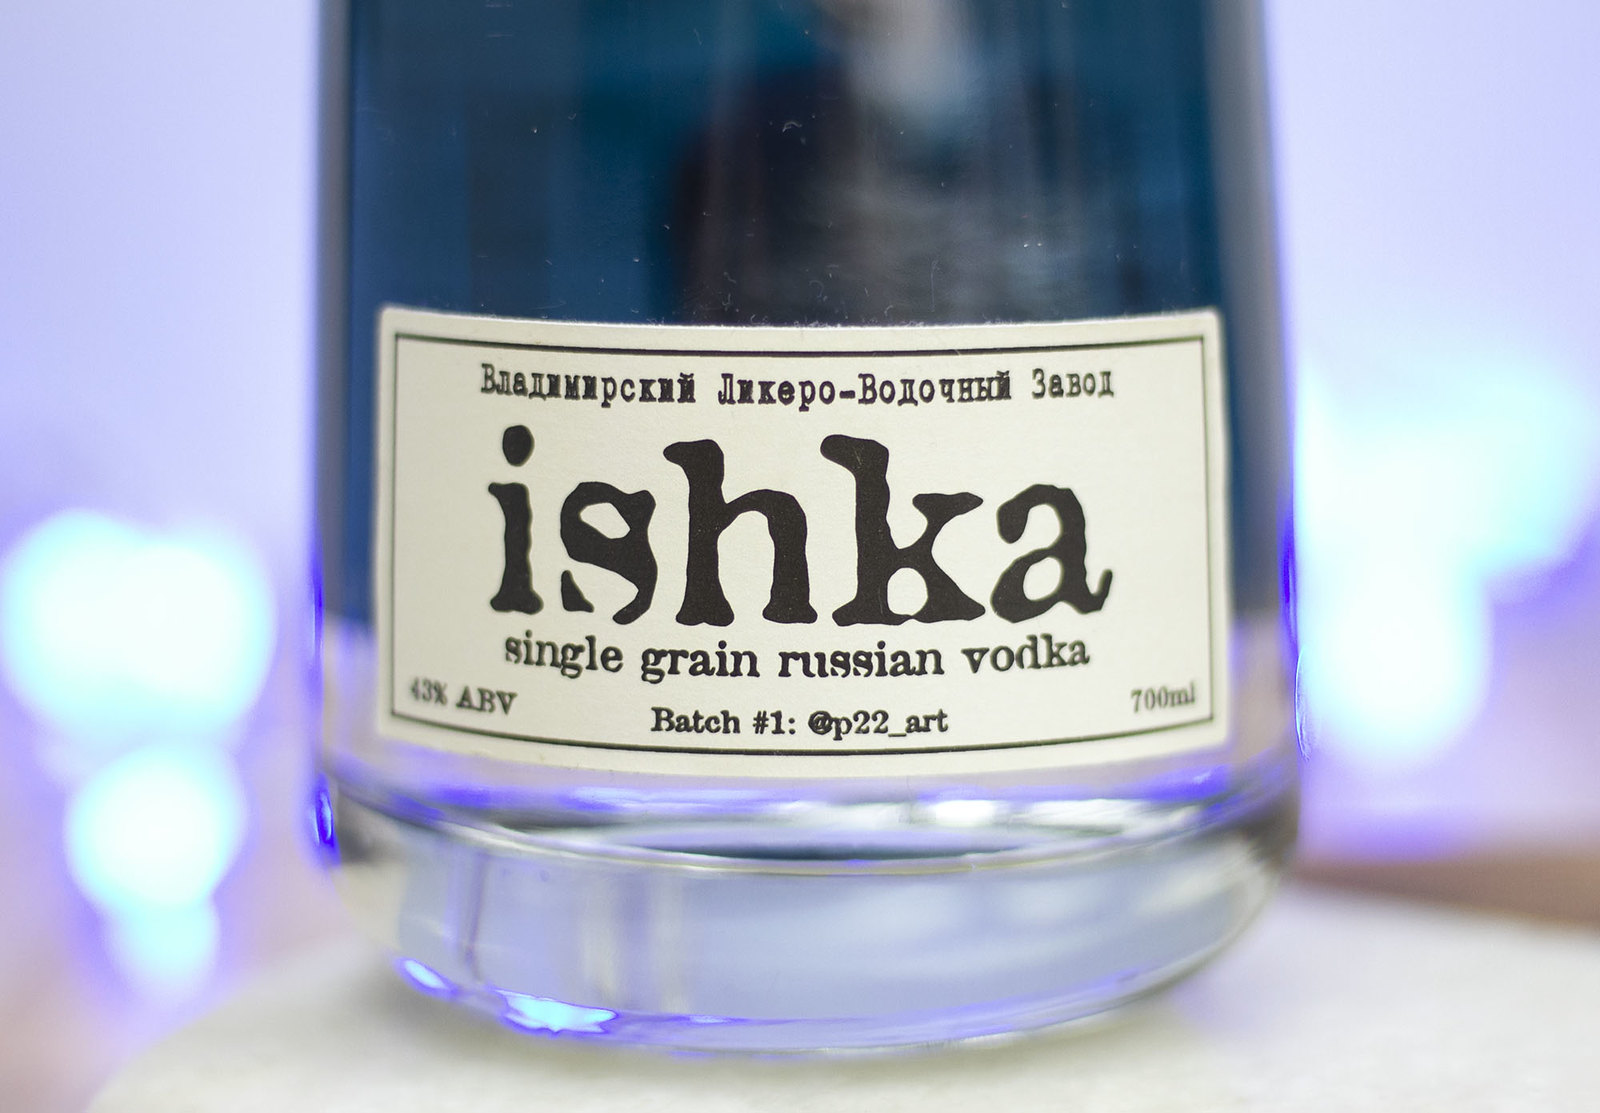 ishka bottle vodka